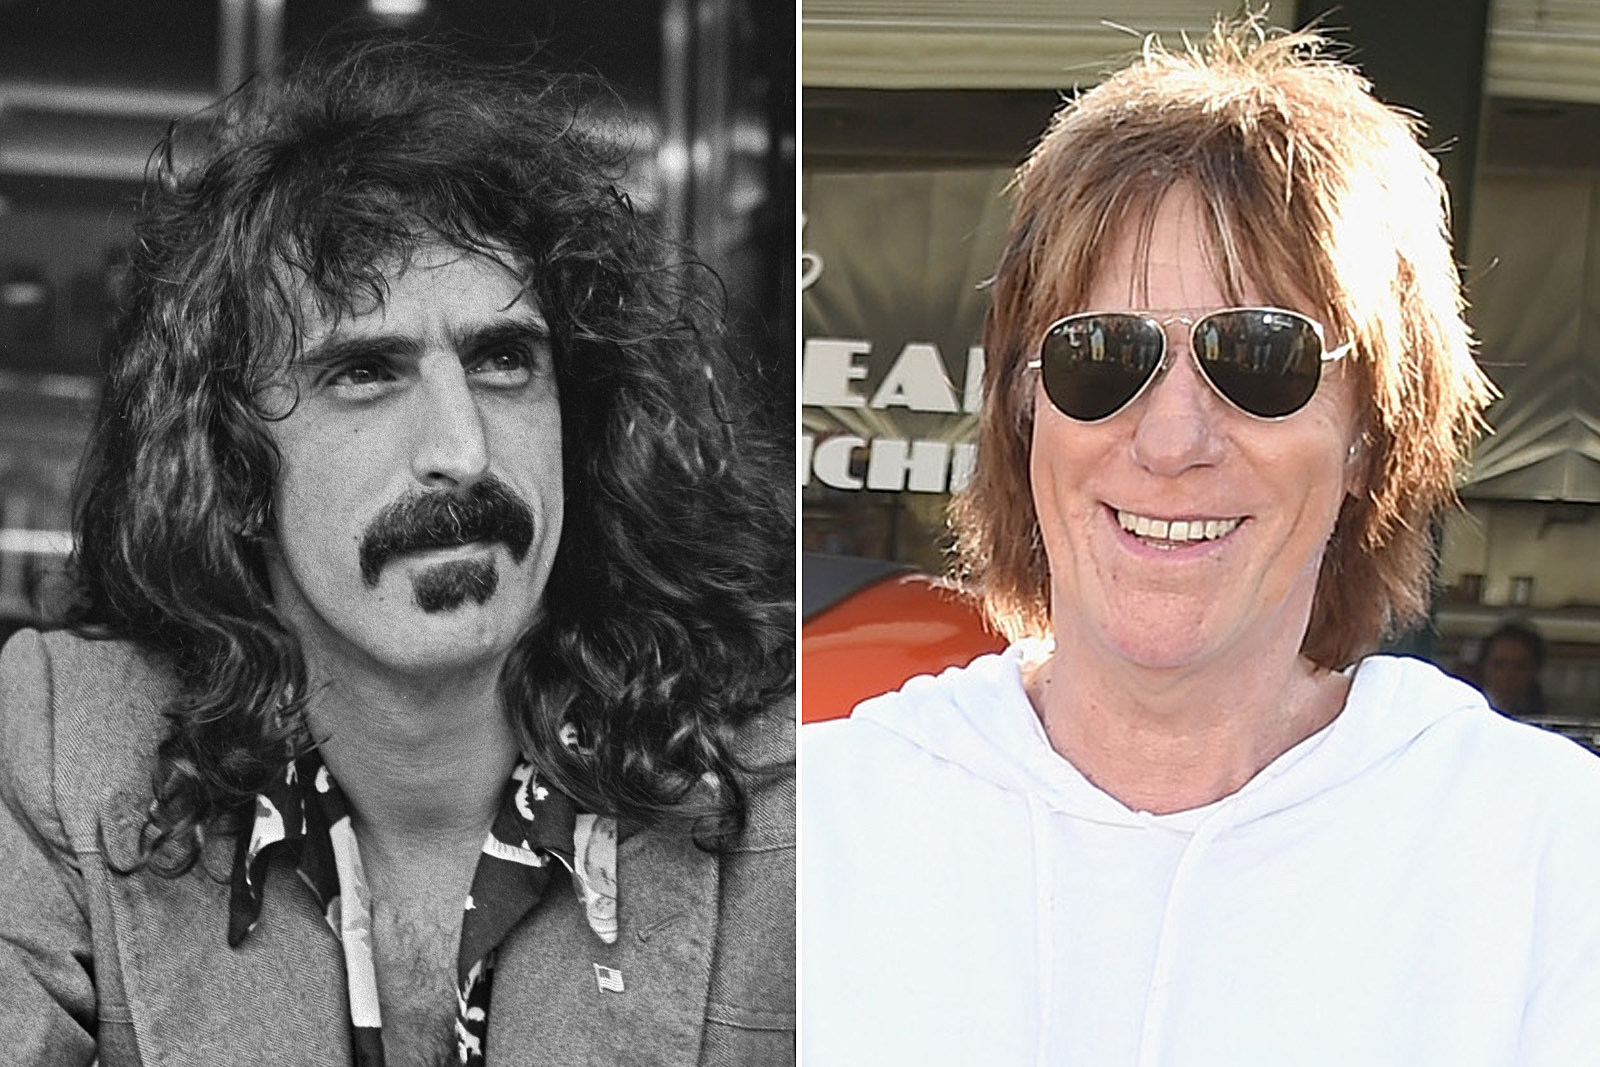 Frank Zappa Could Have Been President, Says Jeff Beck